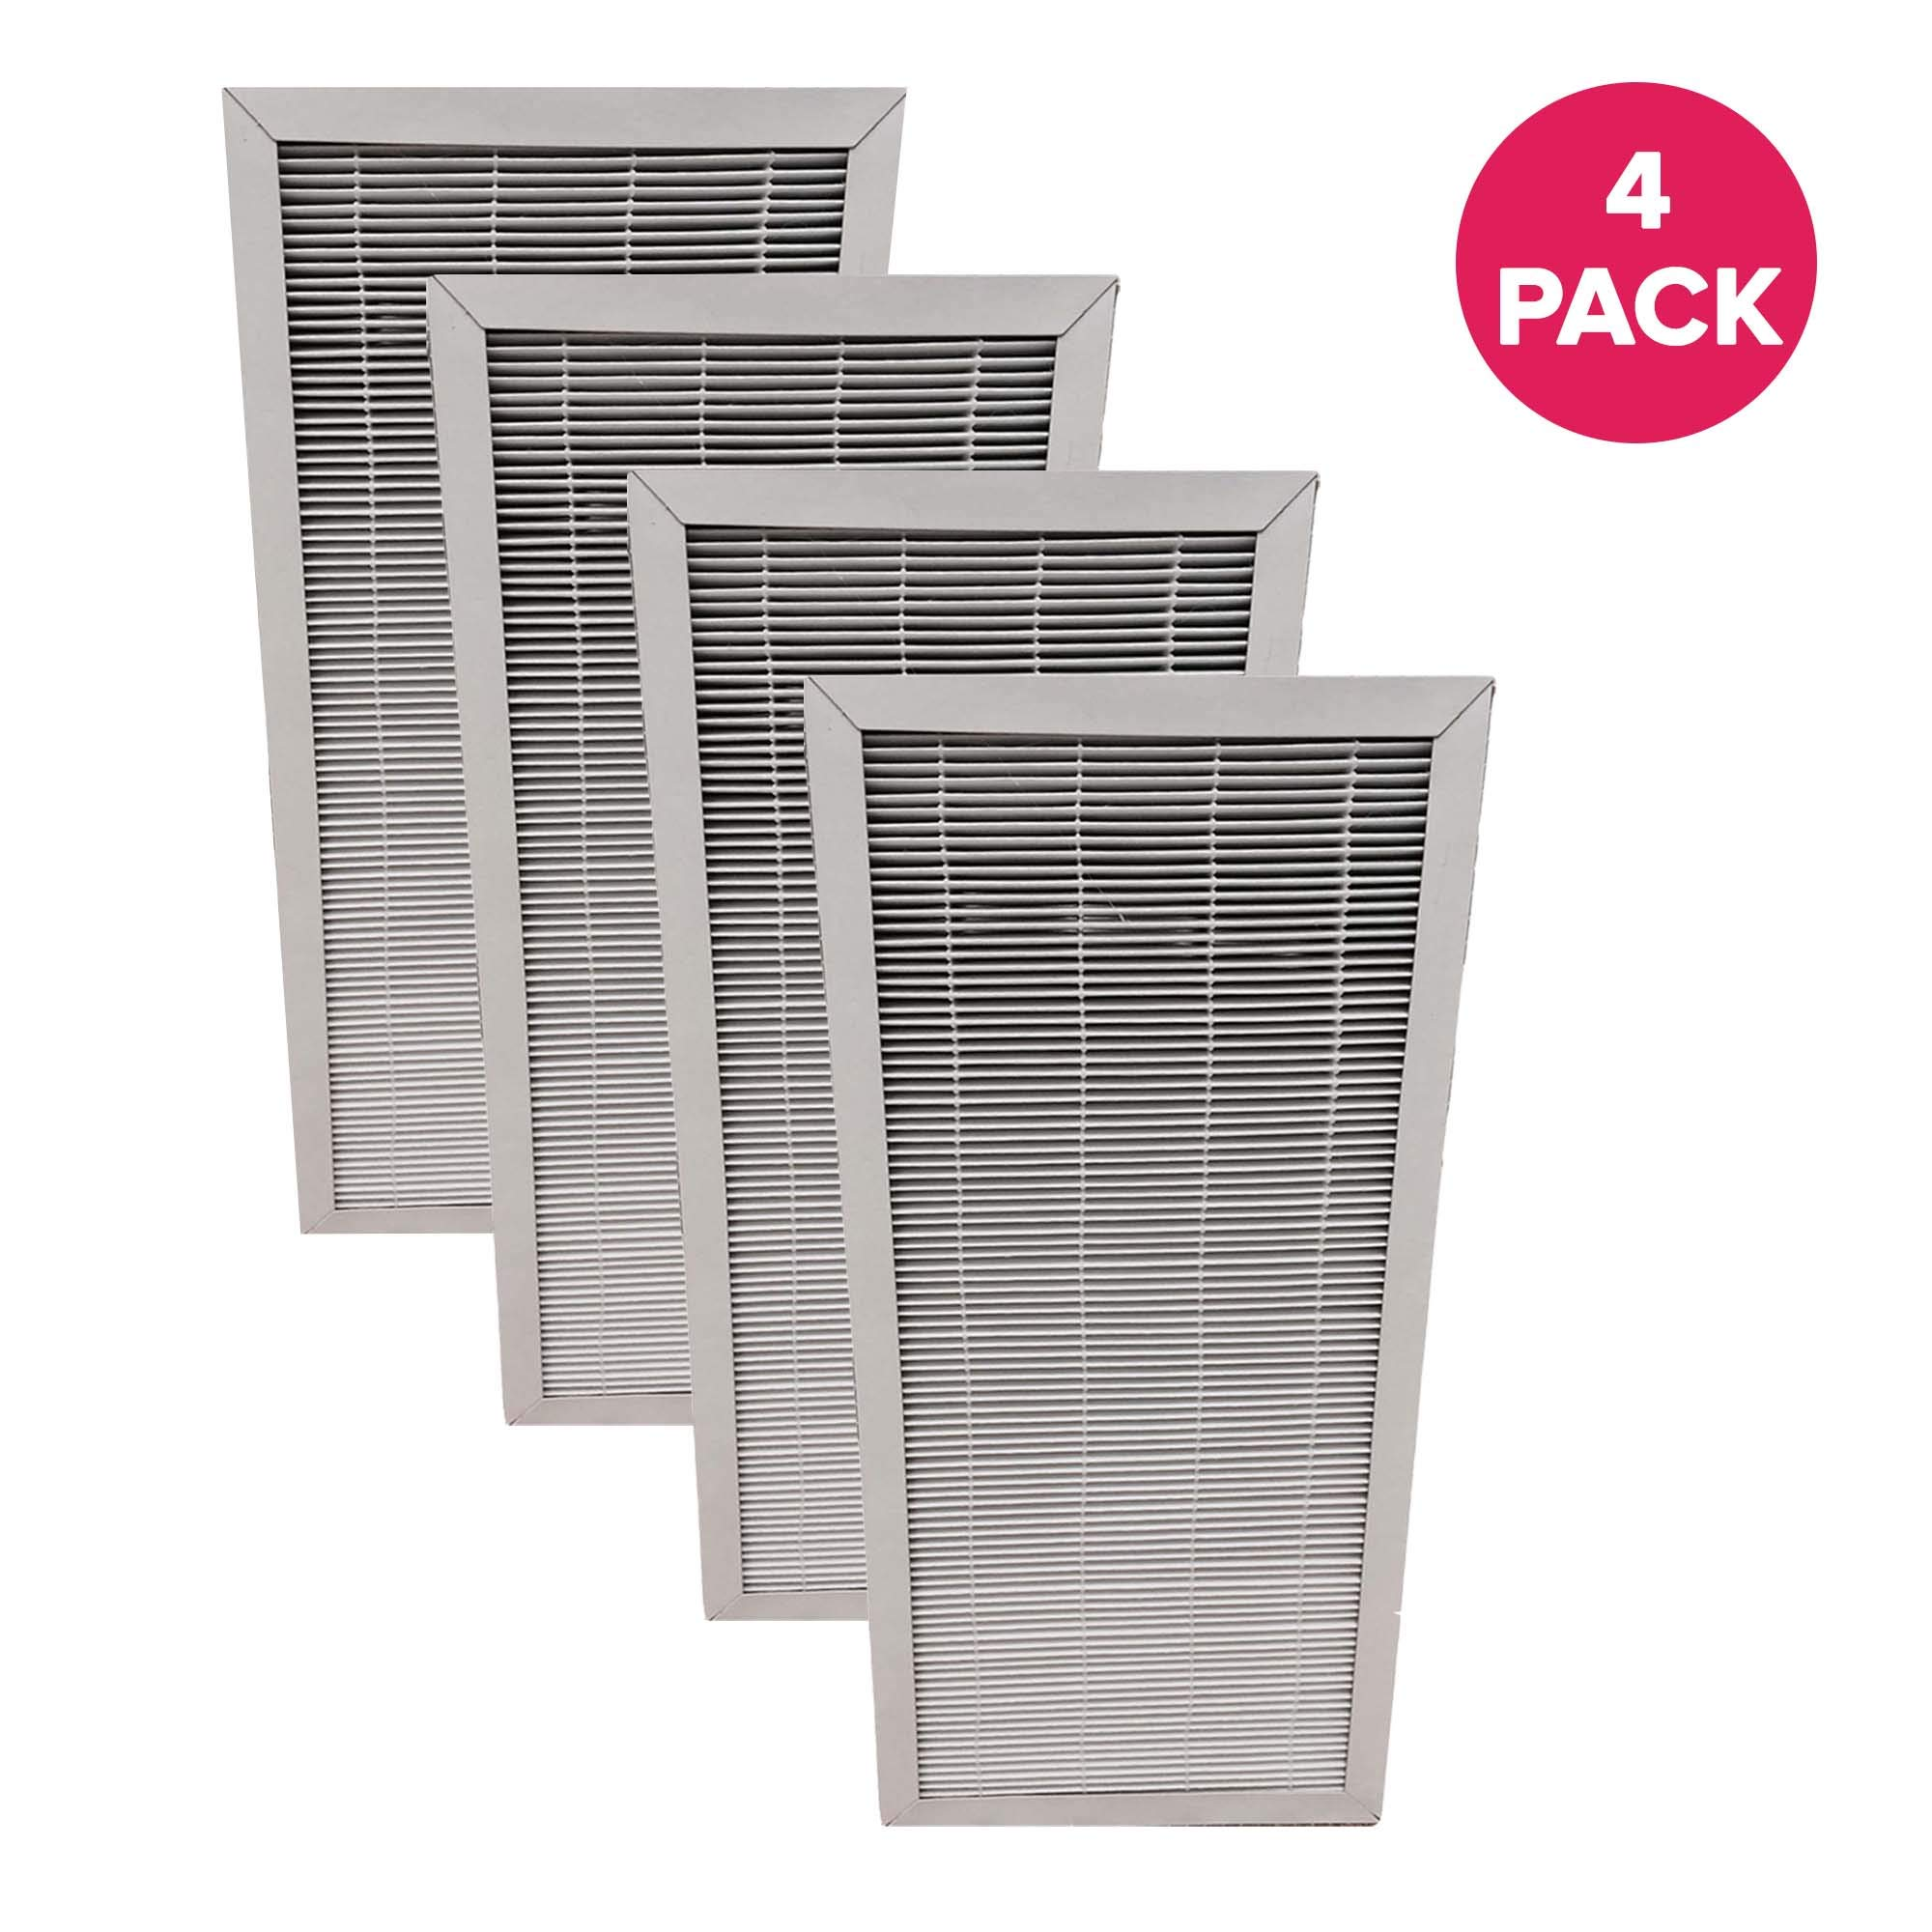 Think Crucial Replacements for Deluxe Blueair 400 Air Purifier Filter Fits All 400 Series Air Purifiers (4 Pack) by Think Crucial